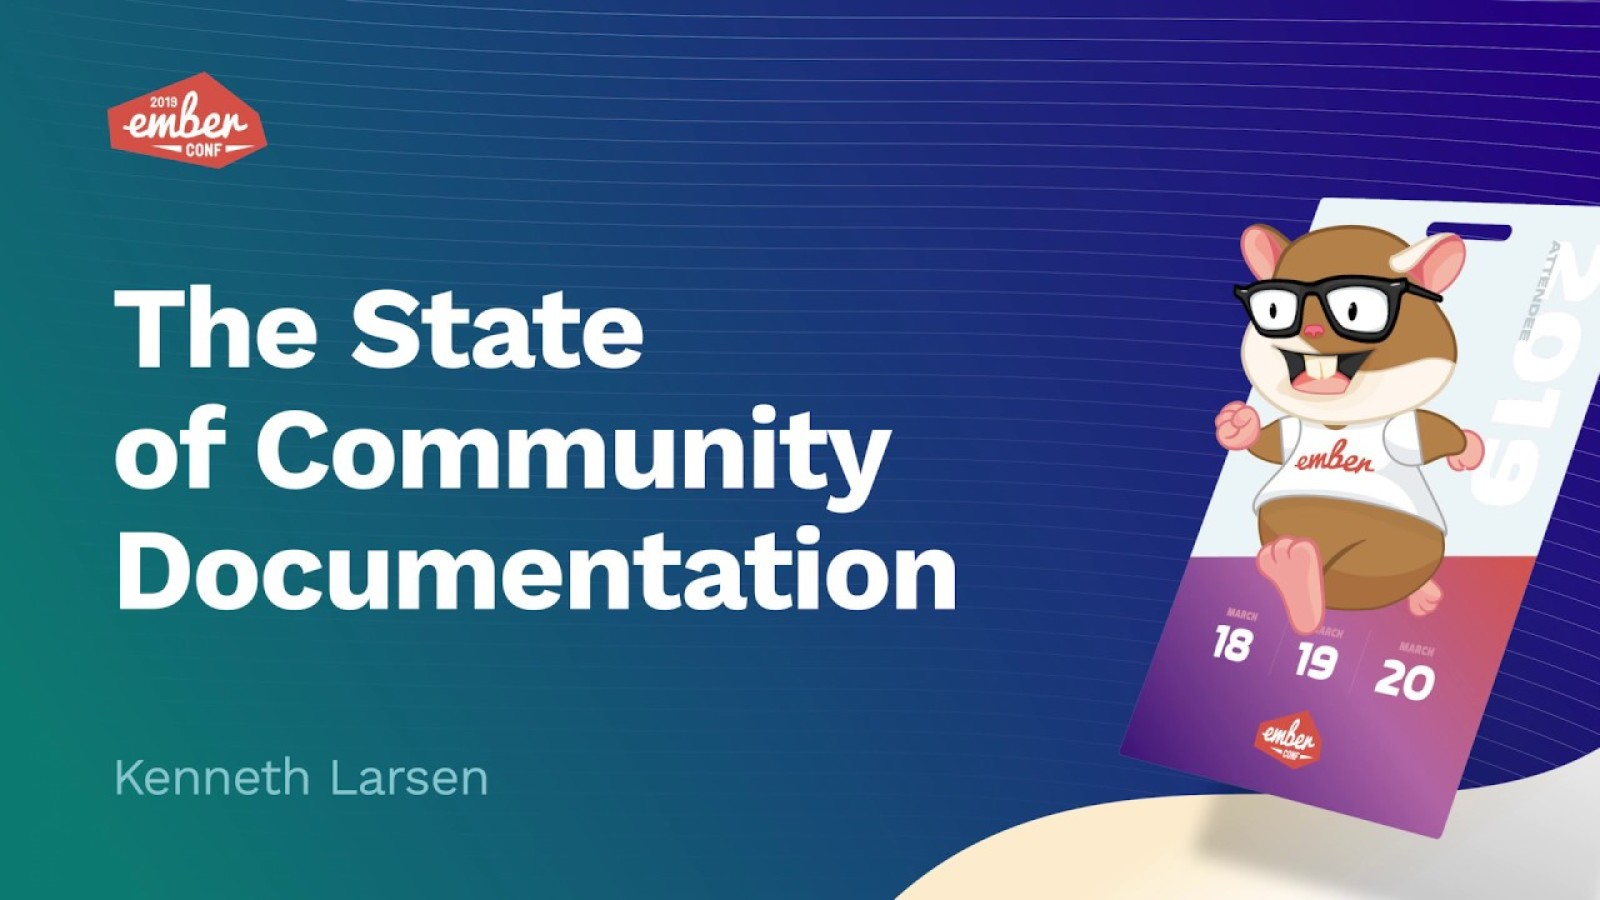 The State of Community Documentation